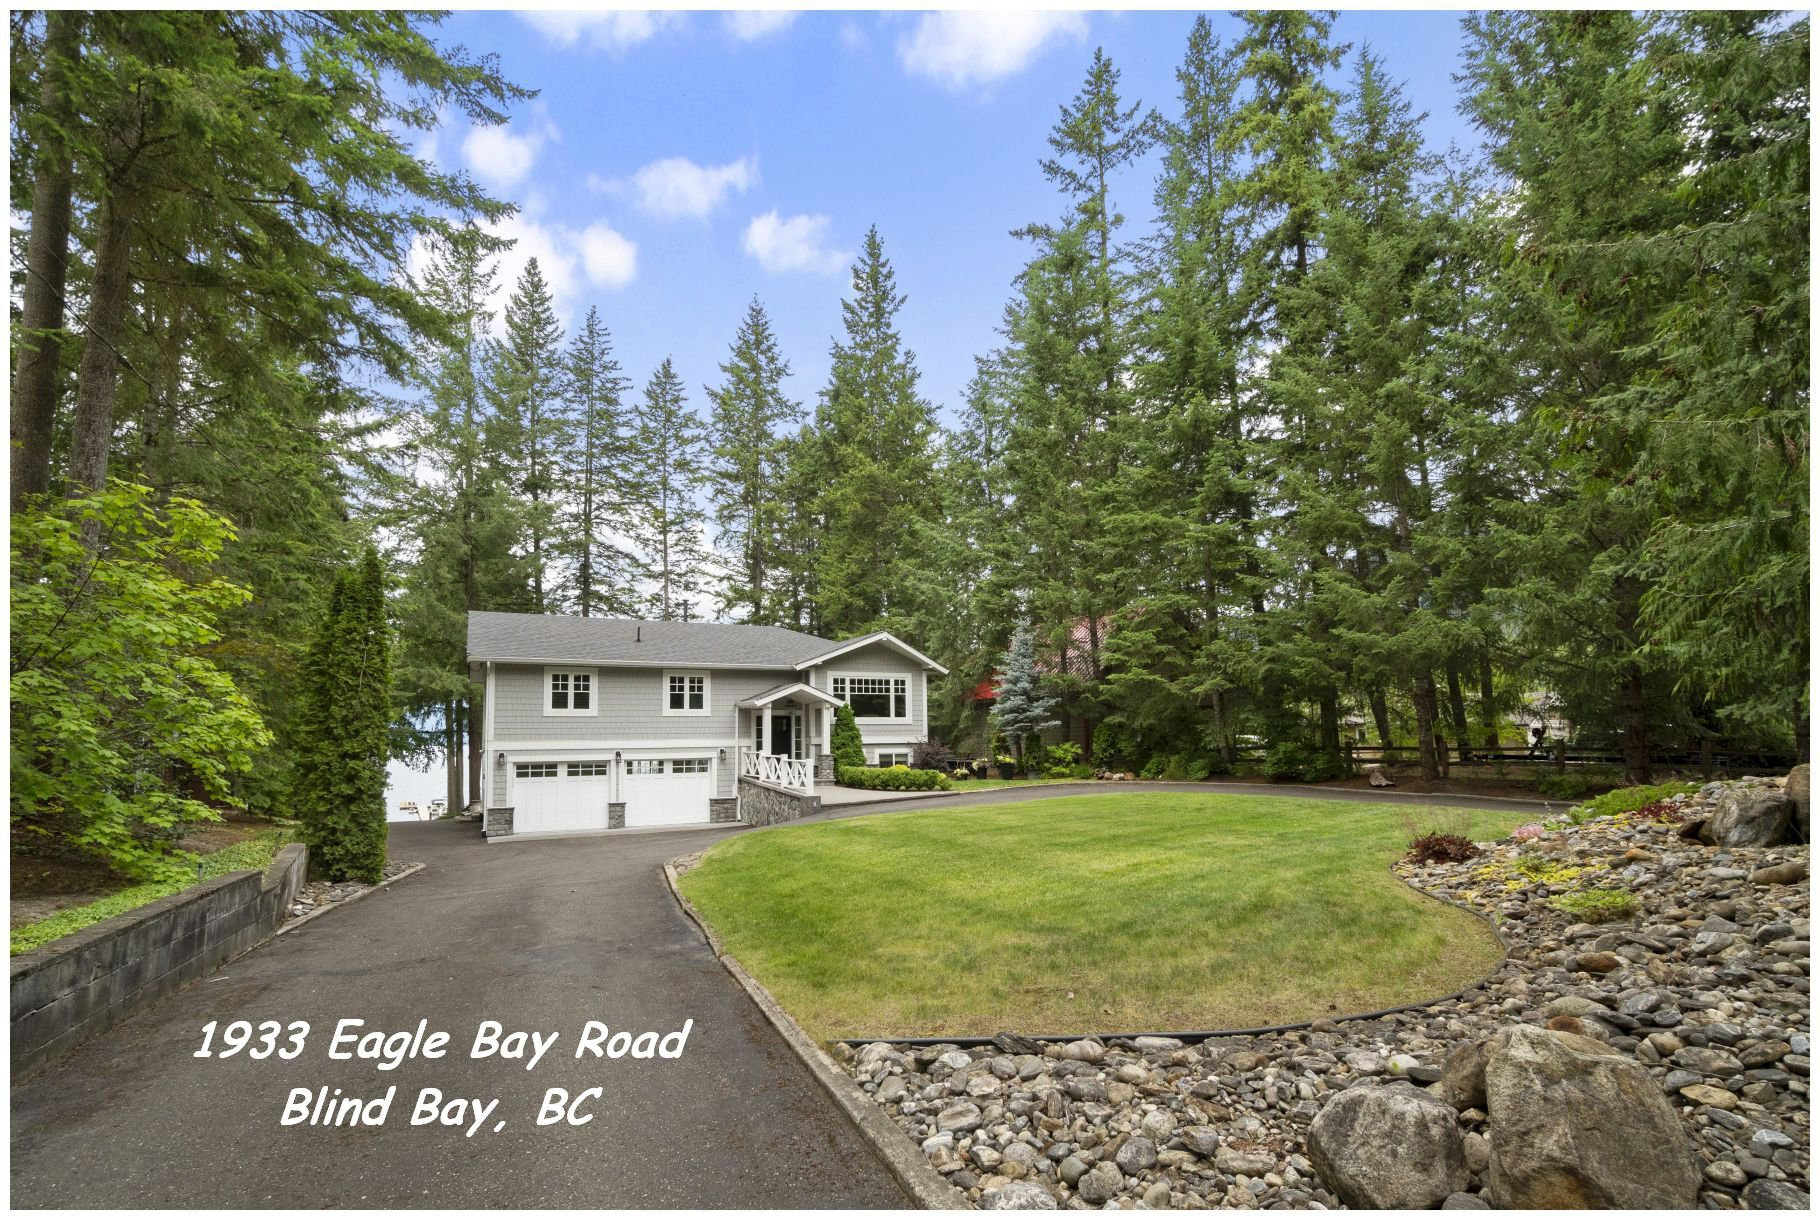 Main Photo: 1933 Eagle Bay Road: Blind Bay House for sale (Shuswap Lake)  : MLS®# 10187036